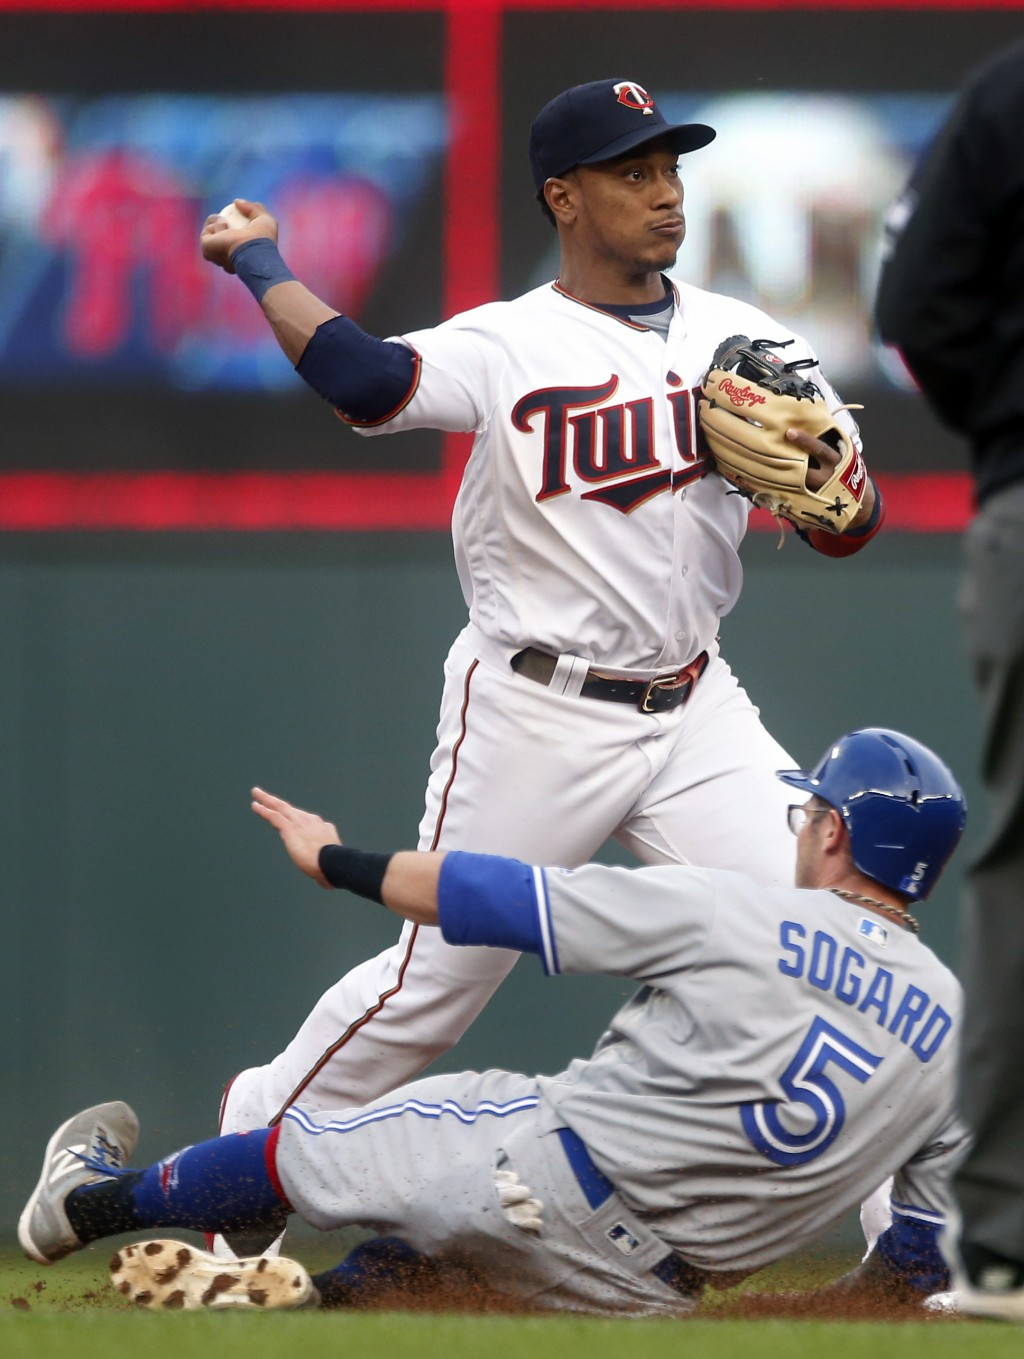 Toronto Blue Jays' Eric Sogard, bottom, is forced out at second as Minnesota Twins shortstop Jorge Polanco completes the double play hit into by Fredd